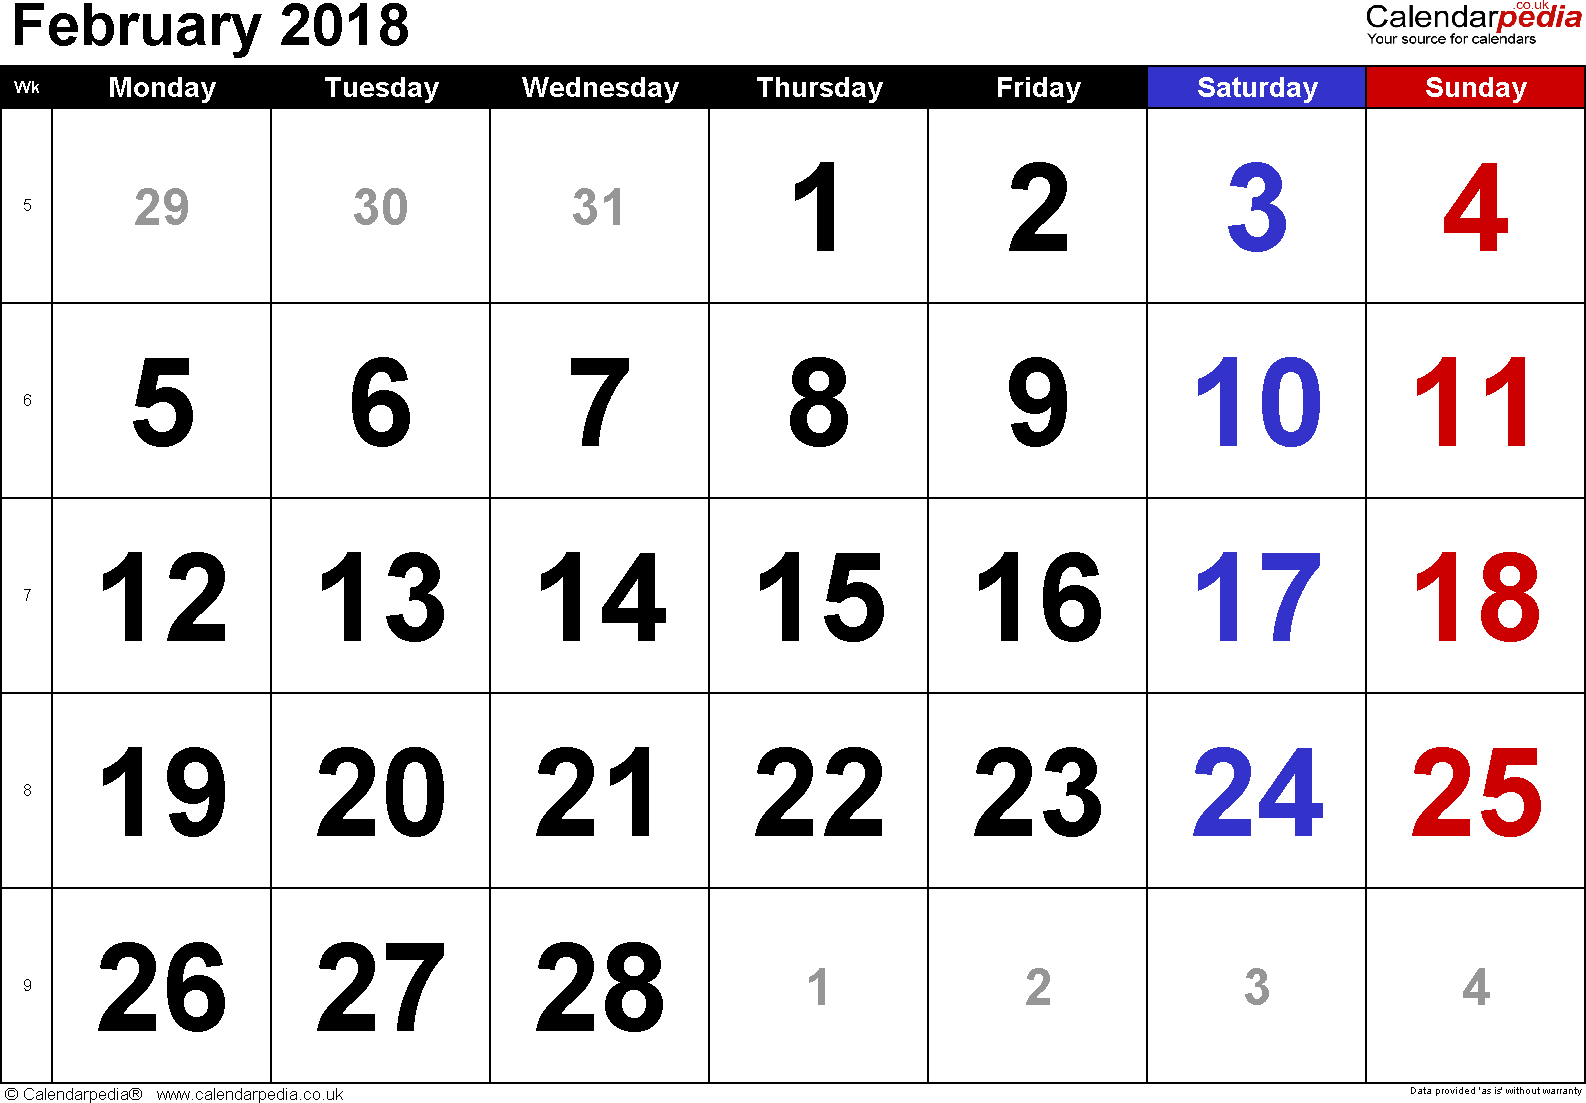 Calendar February 2018 UK, Bank Holidays, Excel/PDF/Word Templates